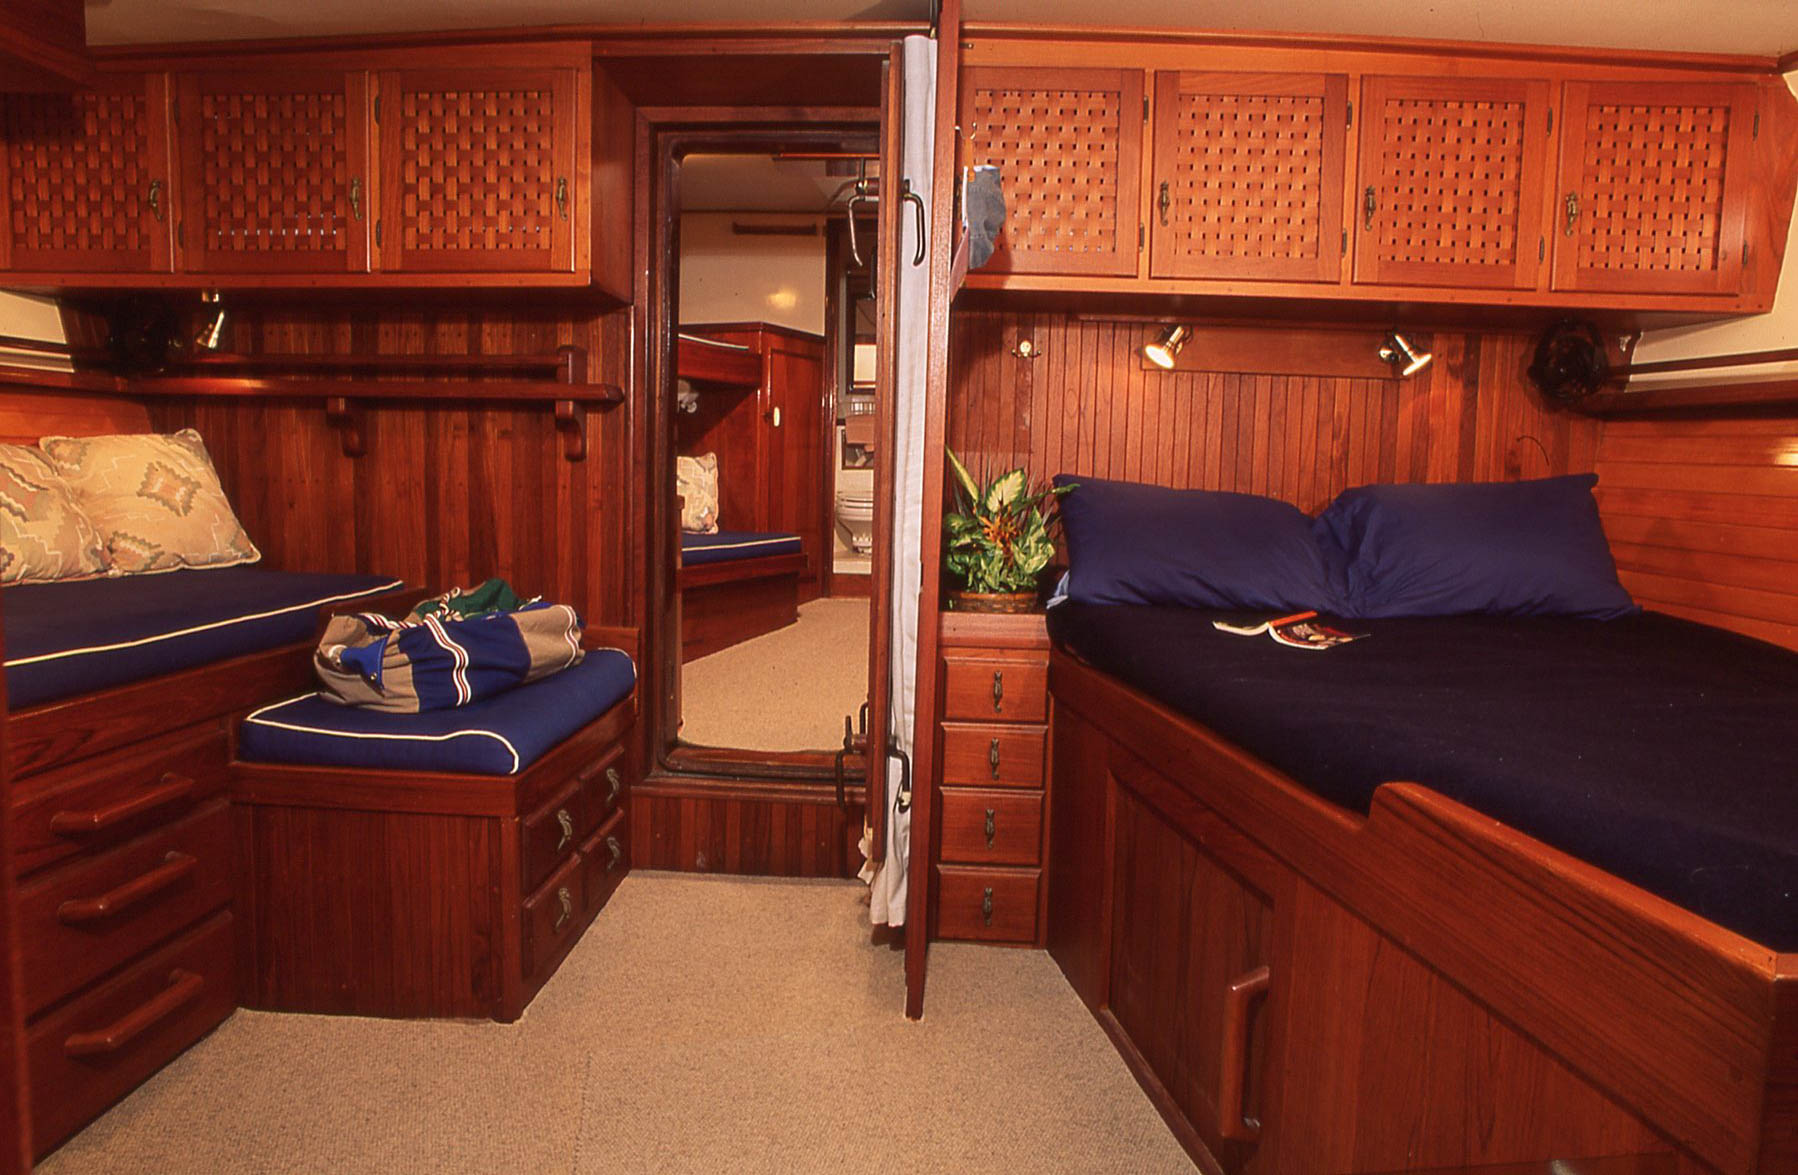 A master stateroom that works well offshore. Making the bed might be more tedious than an island berth arrangement, but it works. Note the separation between the berths in this cabin and the guest stateroom closer to the bow, with guest head beyond.